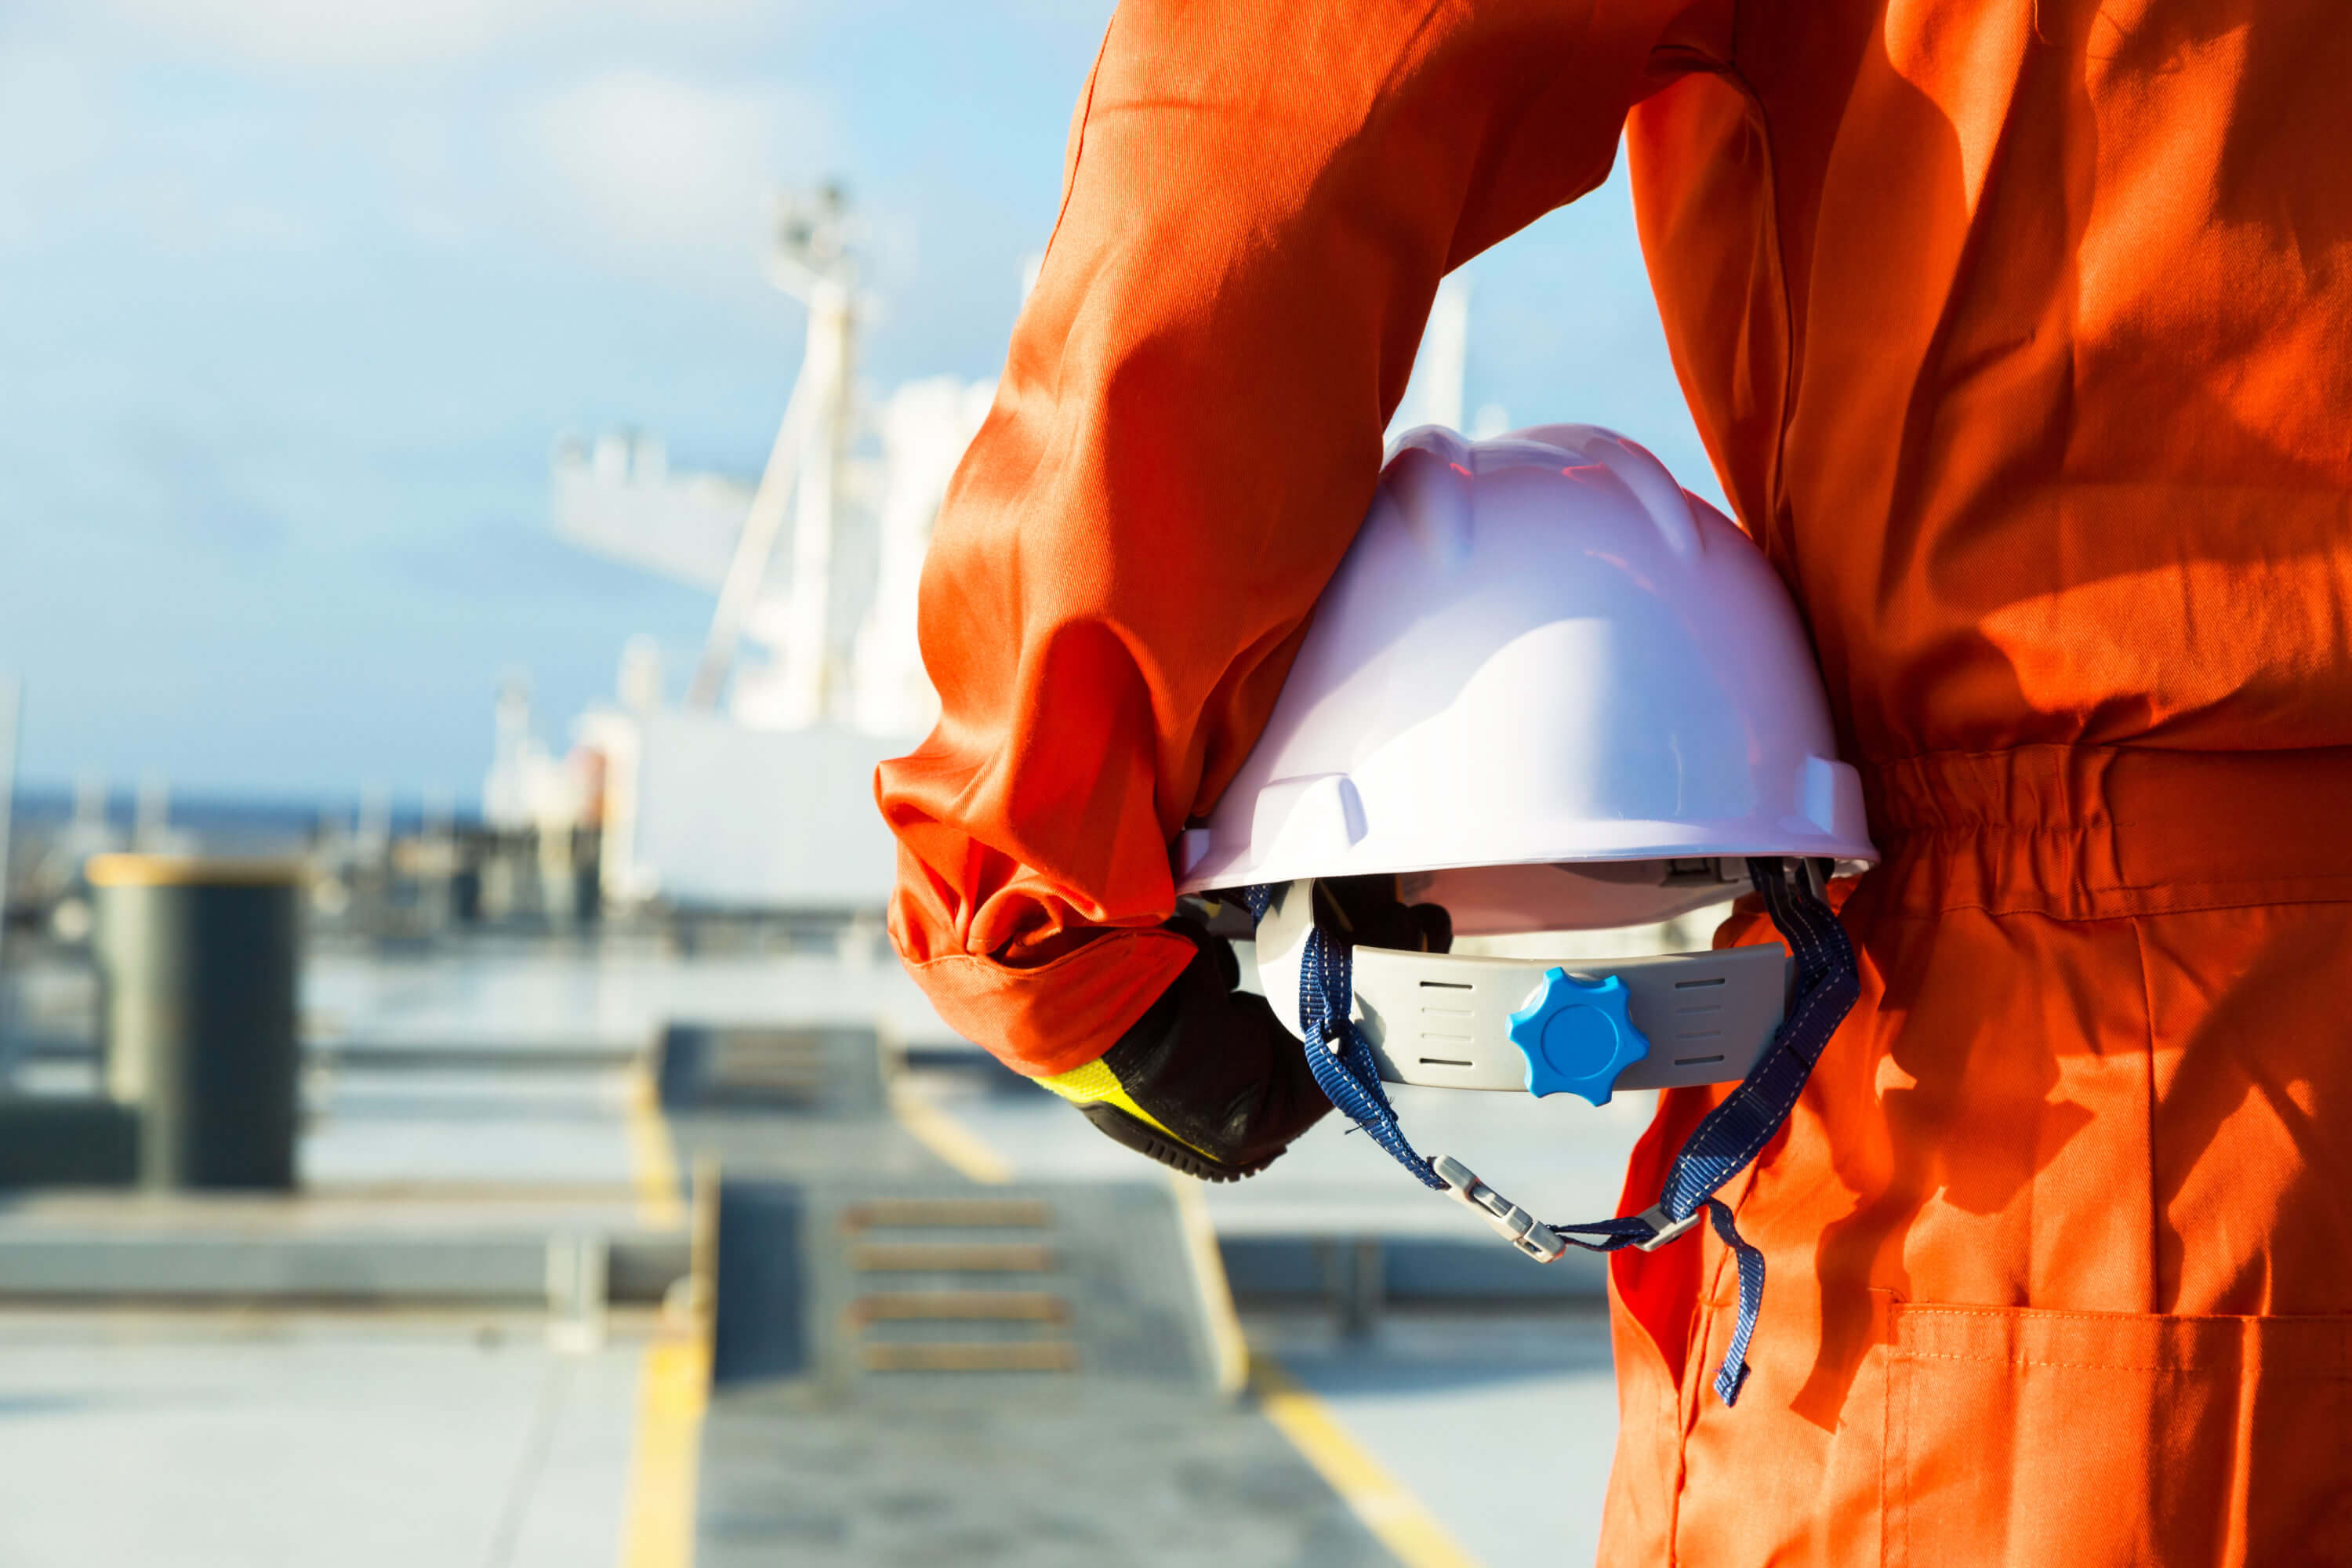 Most common personal injuries onboard: Risks and best practice